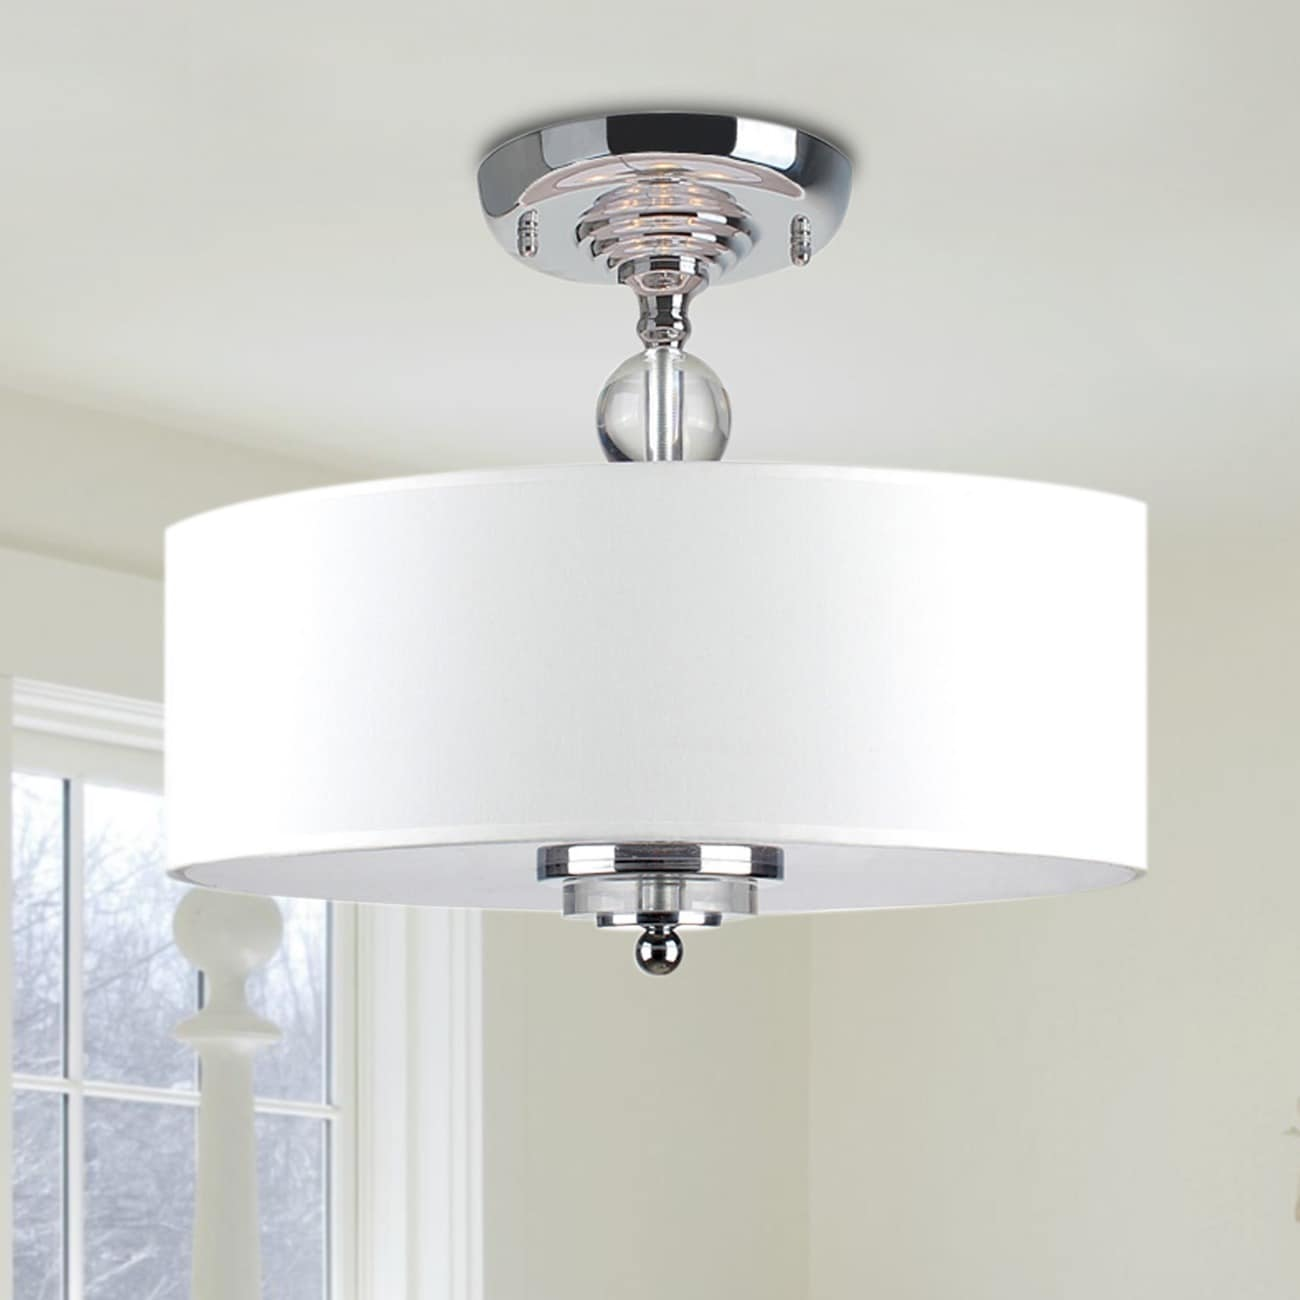 Clay alder home legore crystal decorated off white shade clay alder home legore crystal decorated off white shade flushmount ceiling chandelier free shipping today overstock 14259798 arubaitofo Gallery